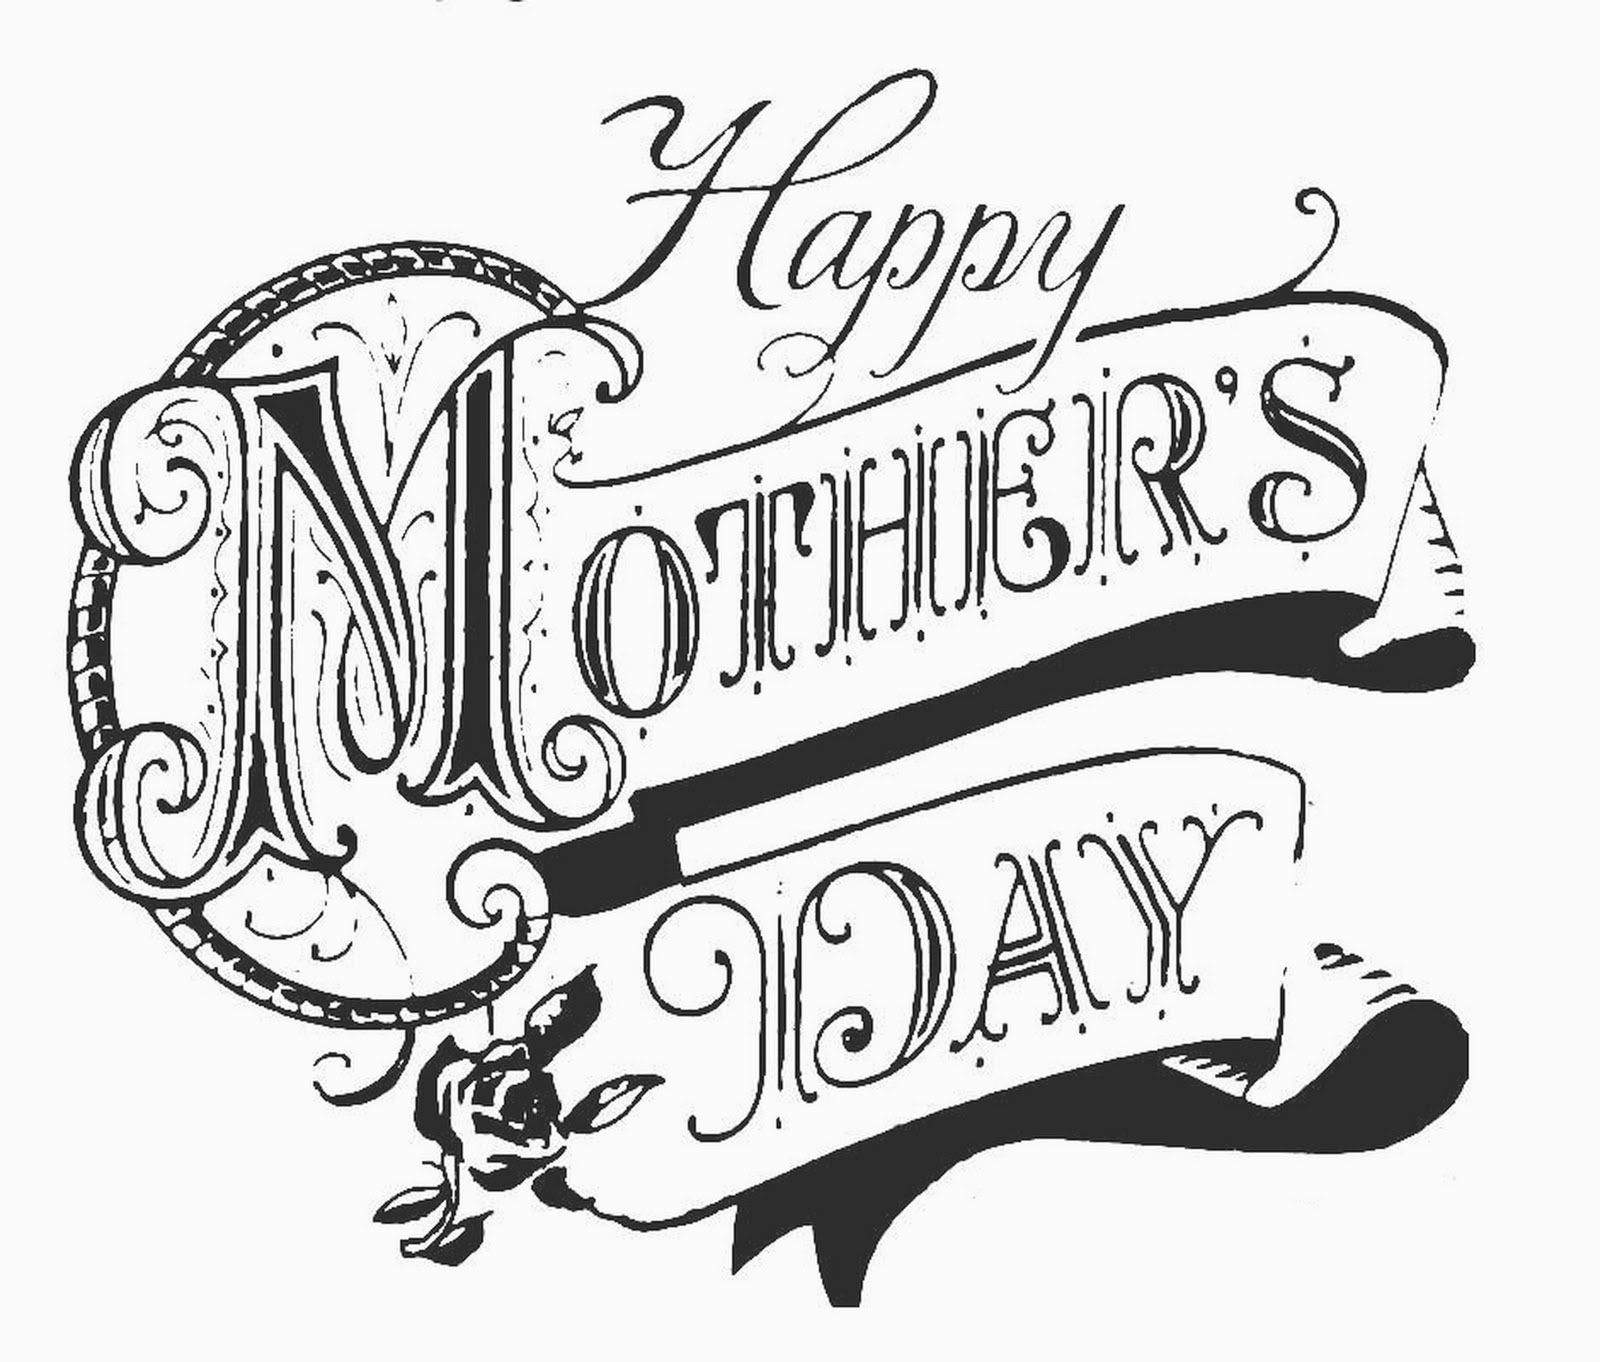 1600x1362 Easy^ Mothers Day Drawings Ideas, Pictures For Cards Mothers Day